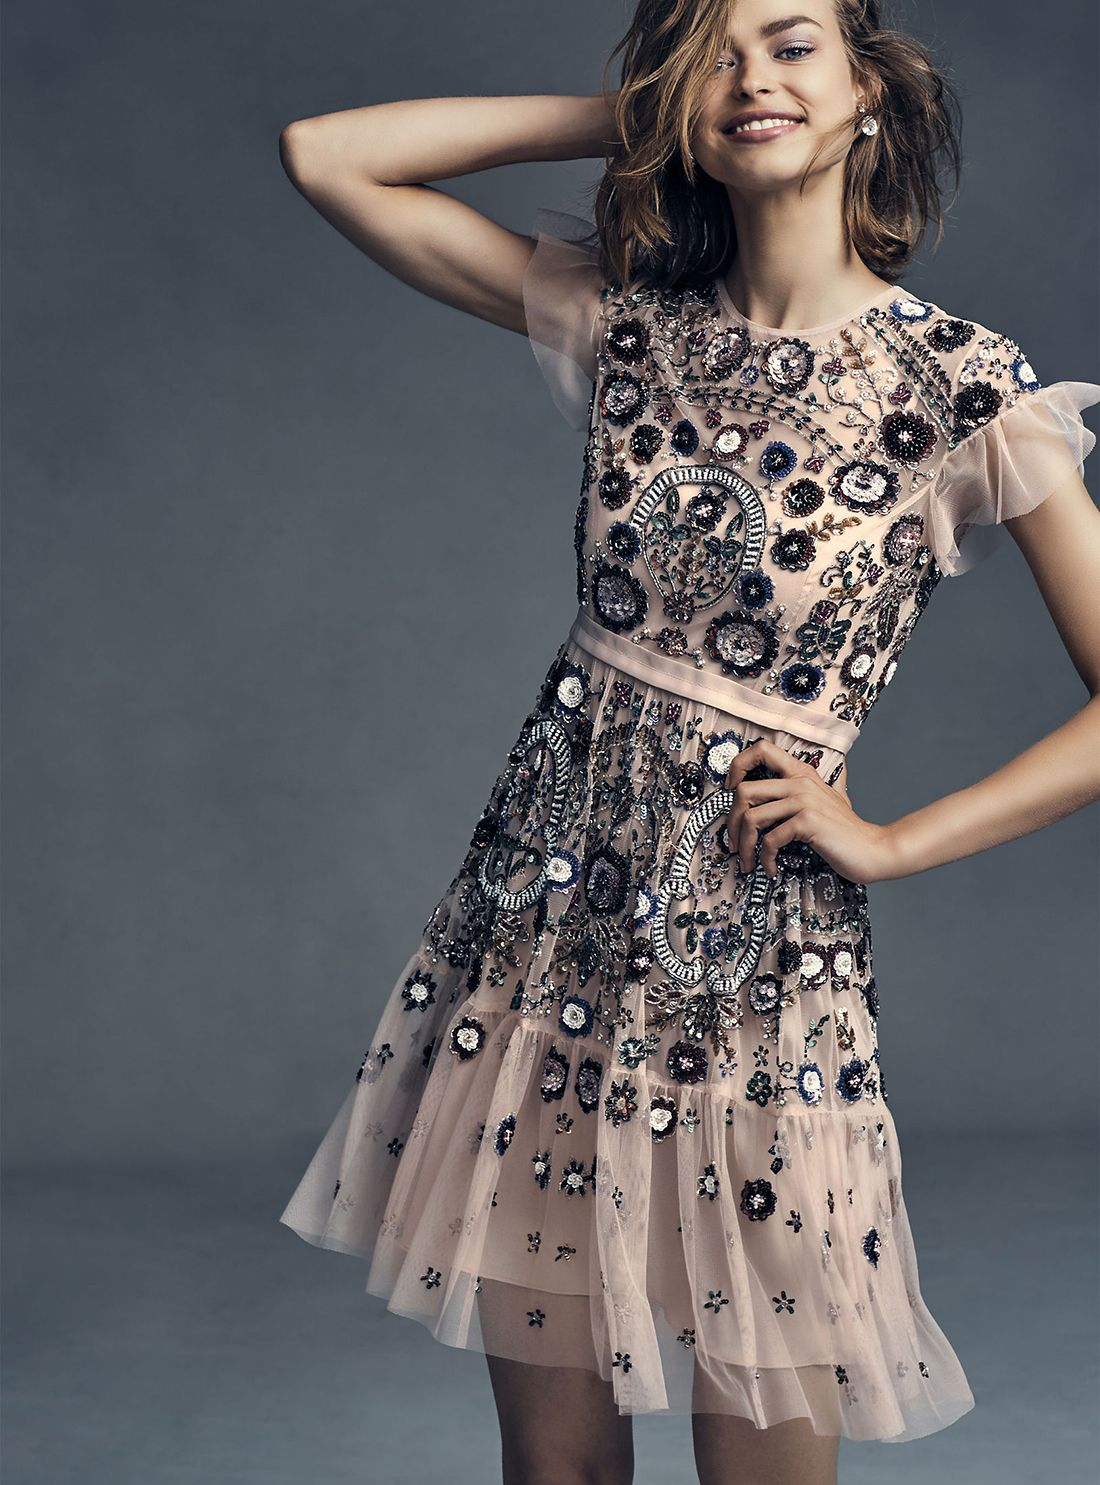 Bhldn just dropped their biggest party dress collection ever big